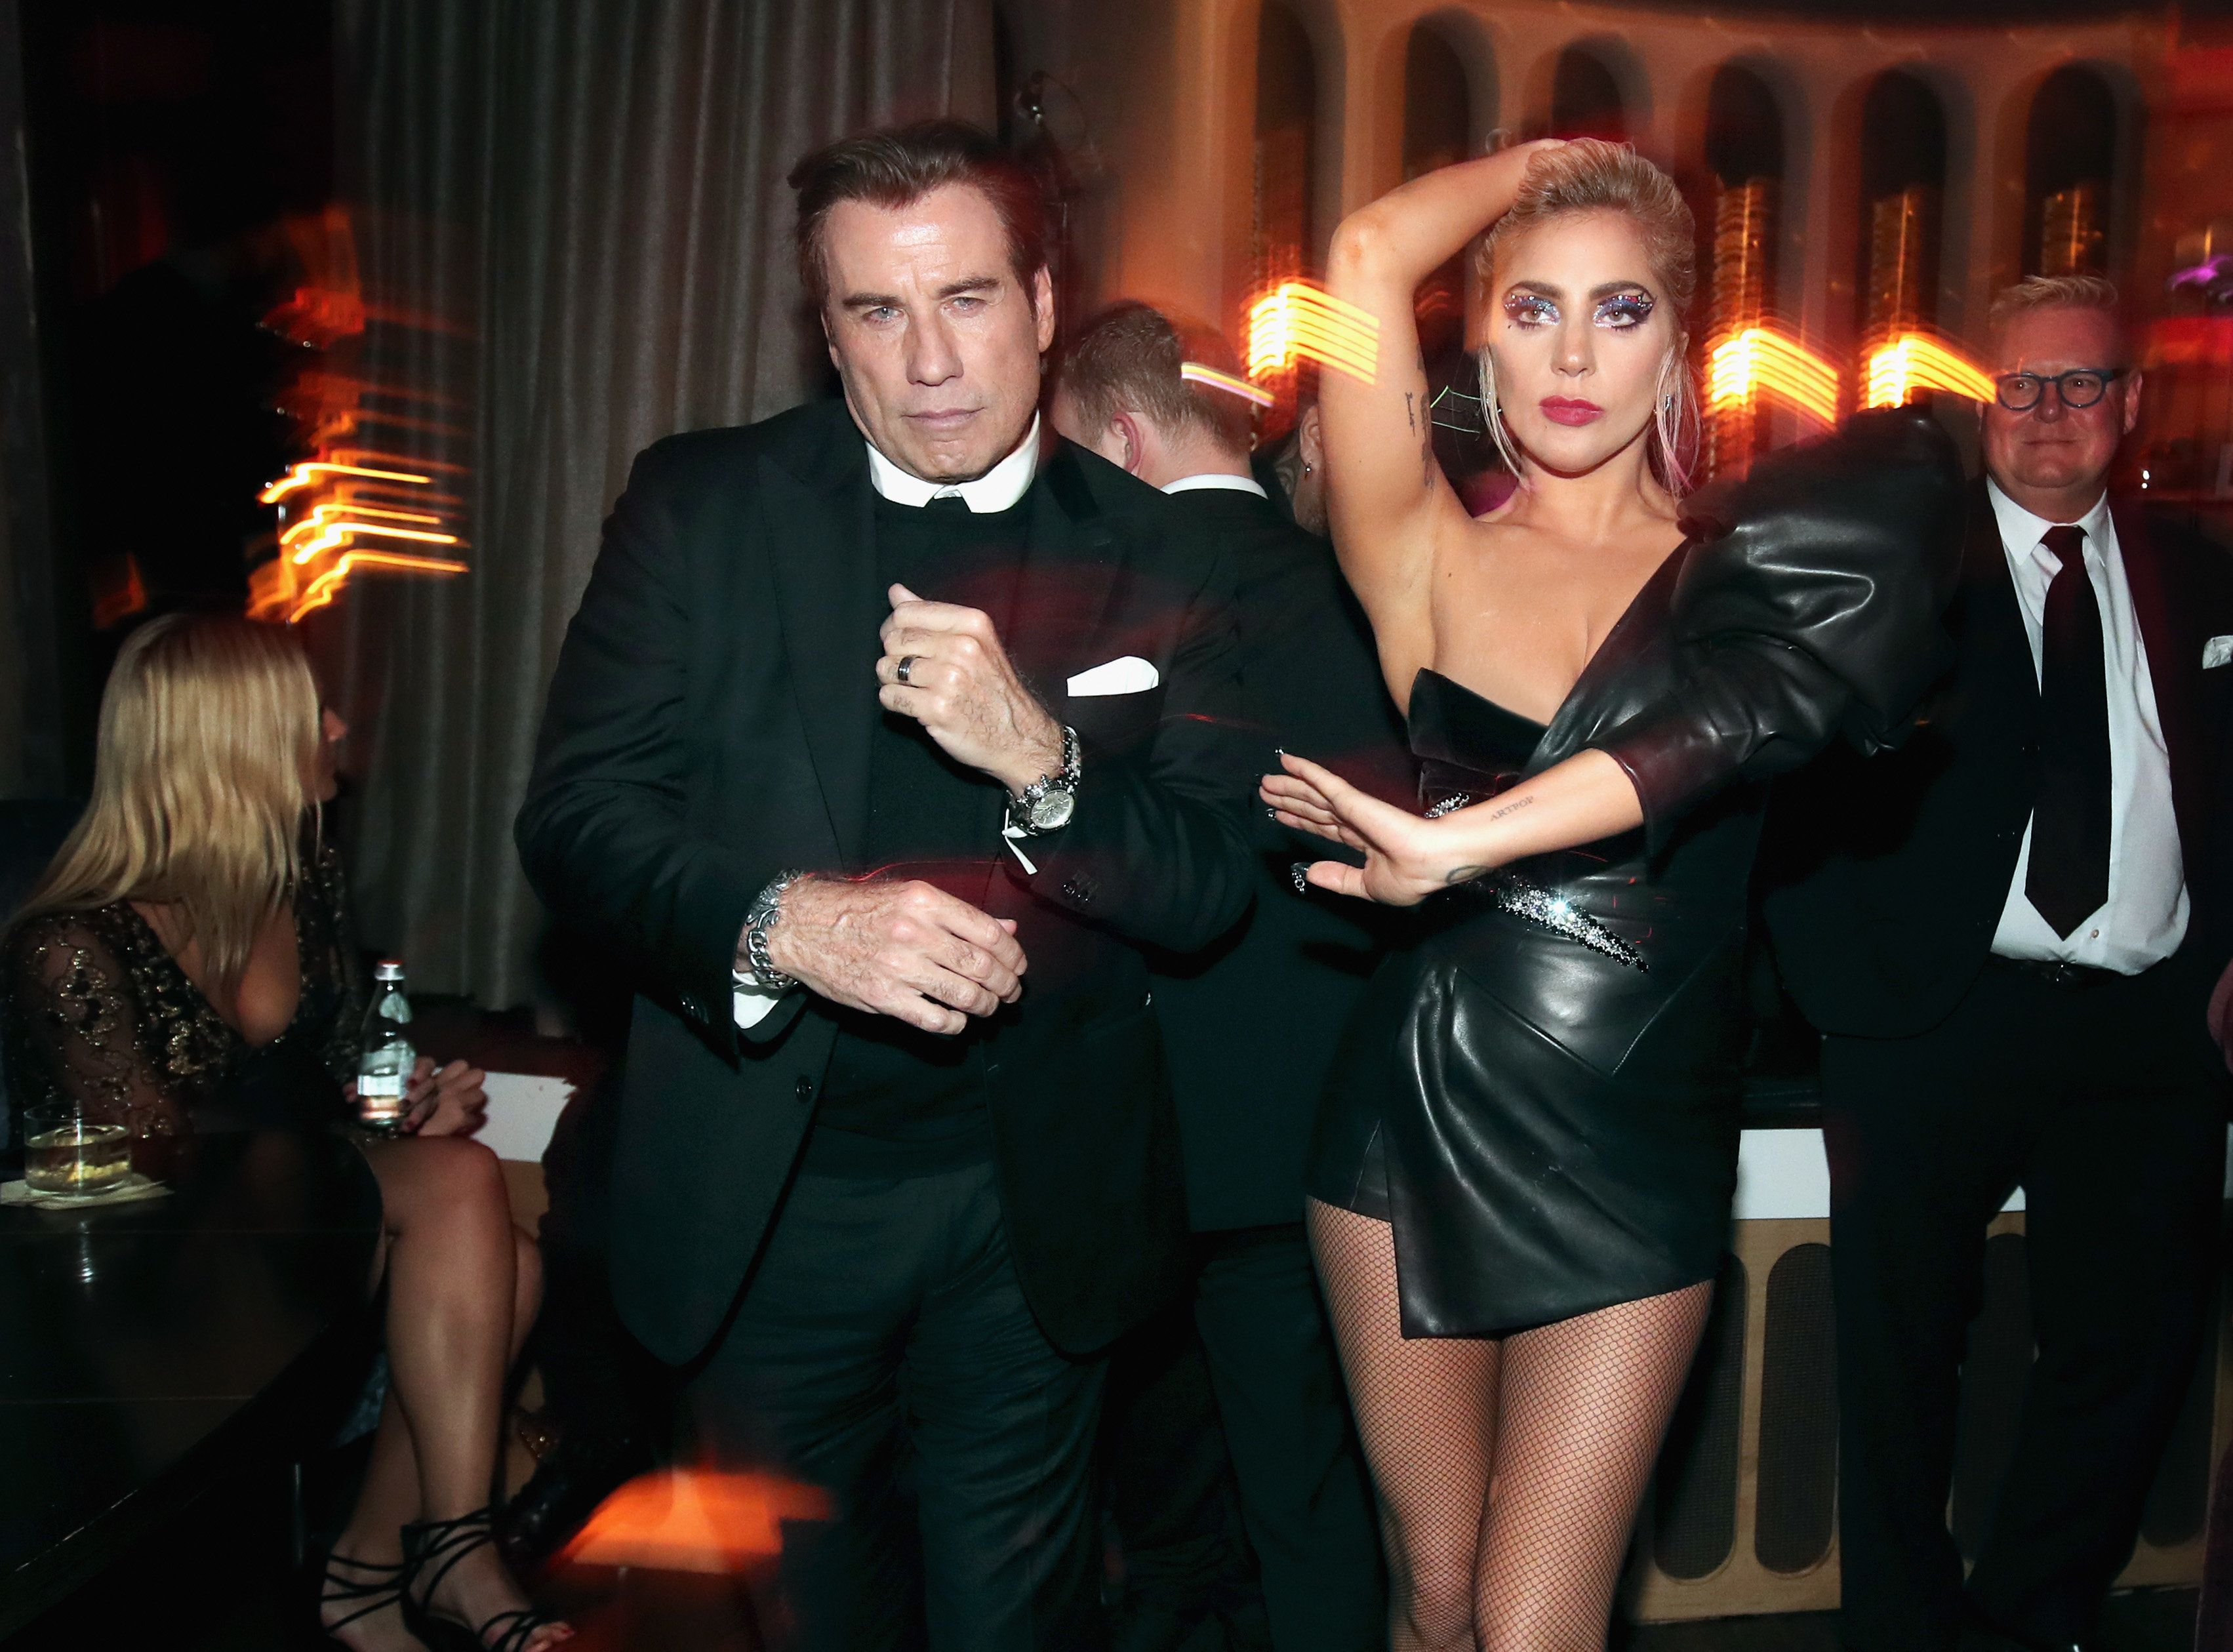 These Post-Grammys Pics Have Made Us Desperately Want To Party With John Travolta And Lady Gaga